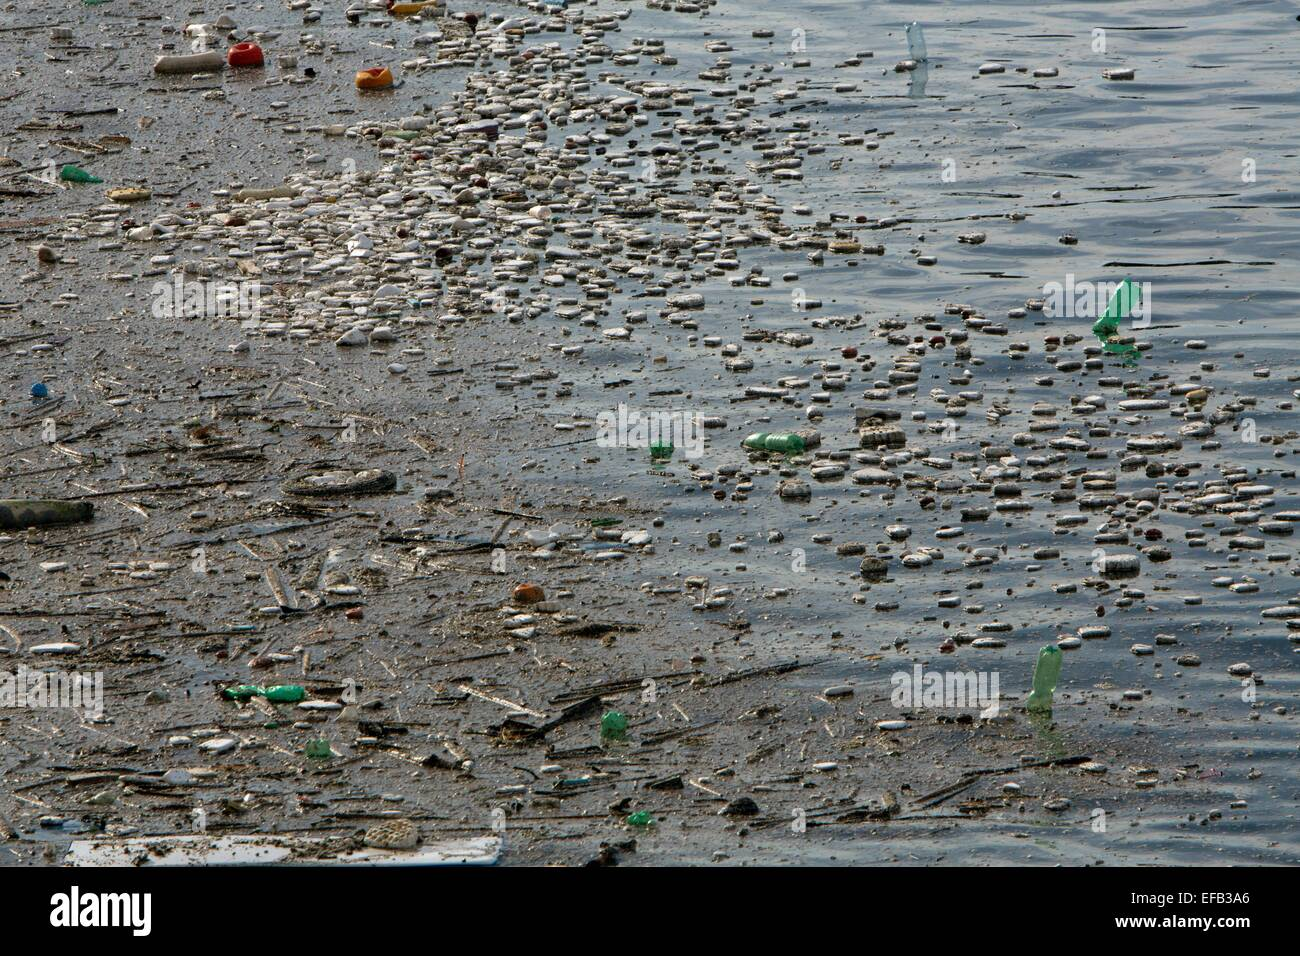 plastic pollution at the Italian coast near Naples Stock Photo